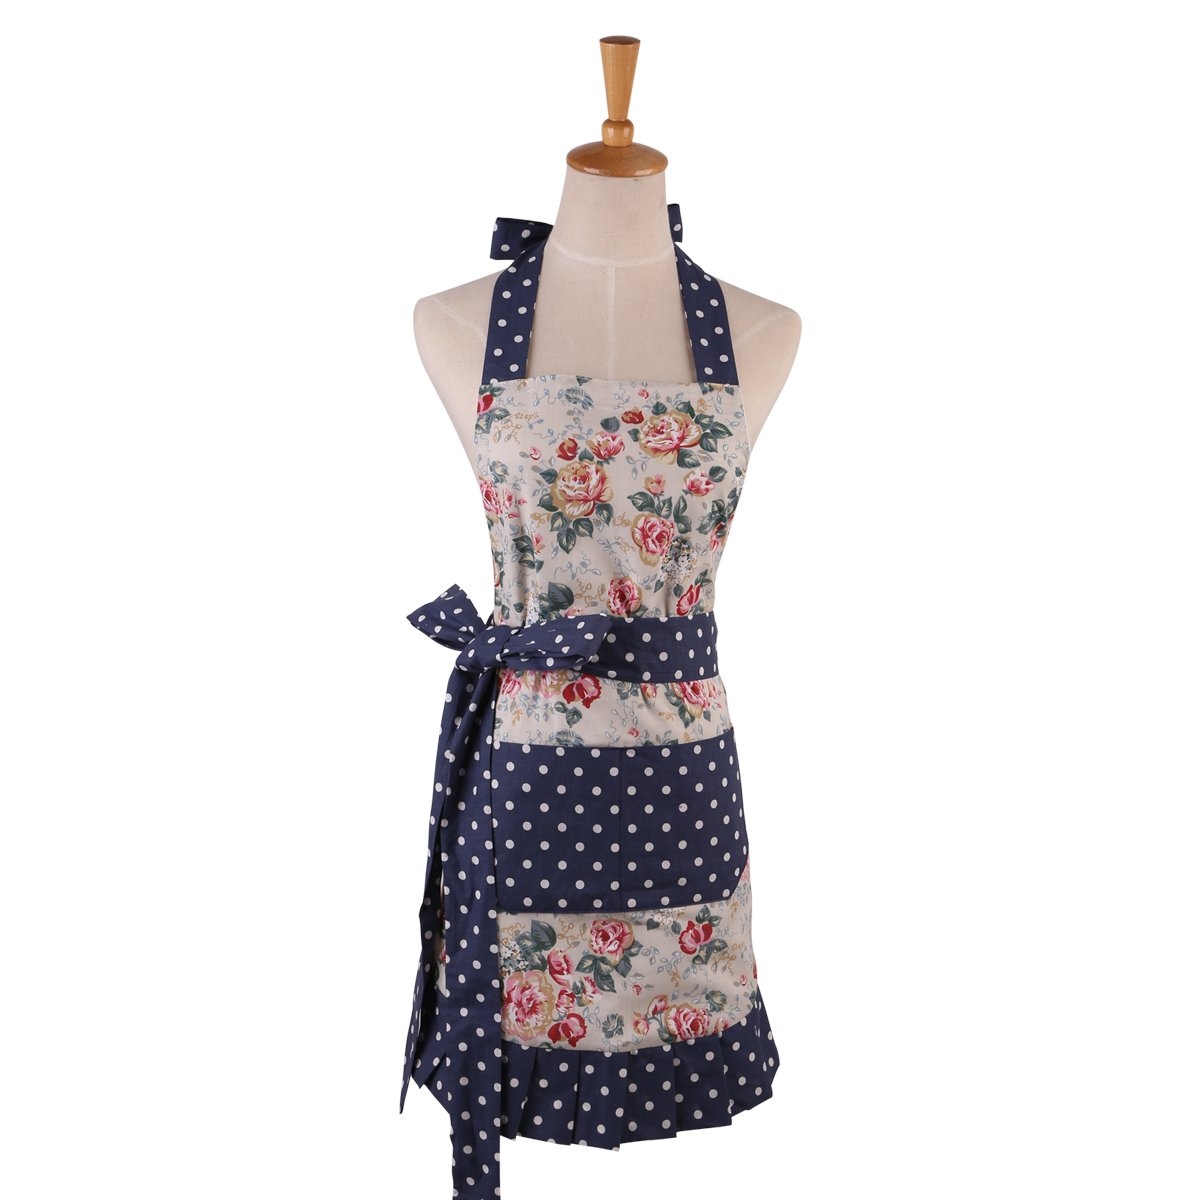 Angeka Cotton Fabric Flirty Women's Apron With Big Pocket In Front Used For Home Baking or Kitchen Cooking (White Style-1) 0